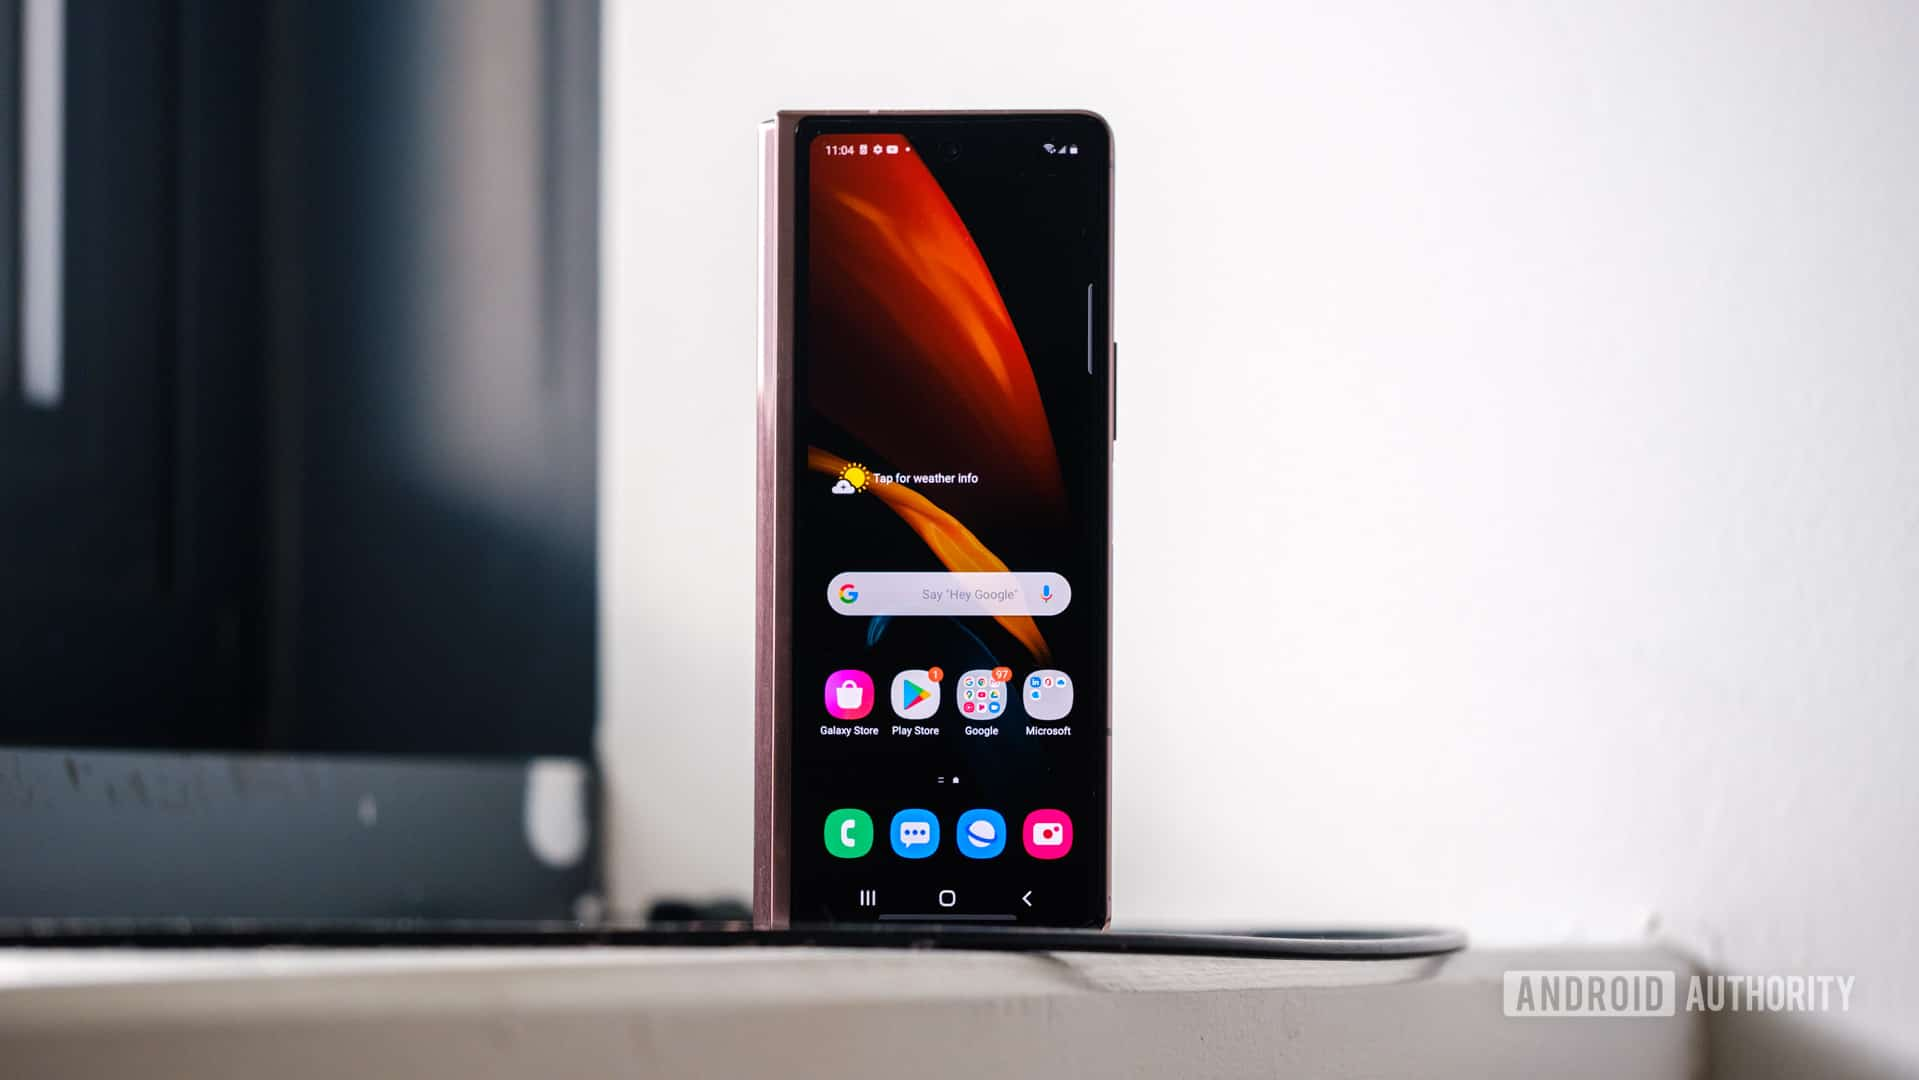 Samsung Galaxy Z Fold 2 front display standing up